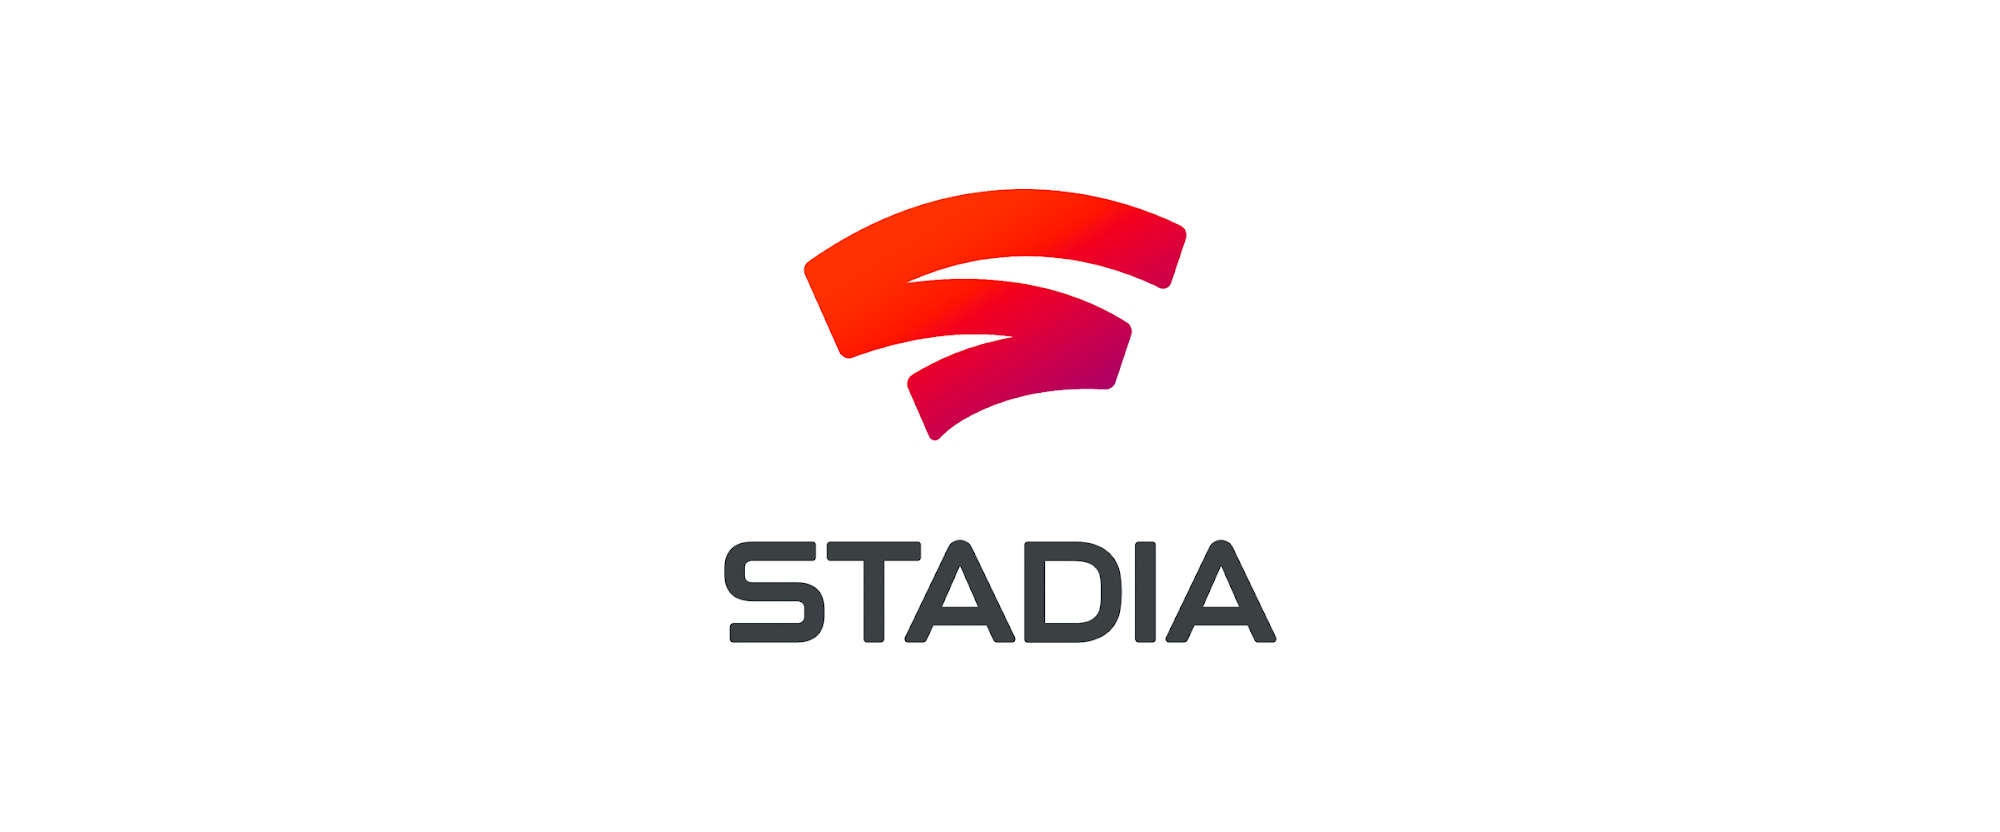 Google Stadia: The Future of Gaming?